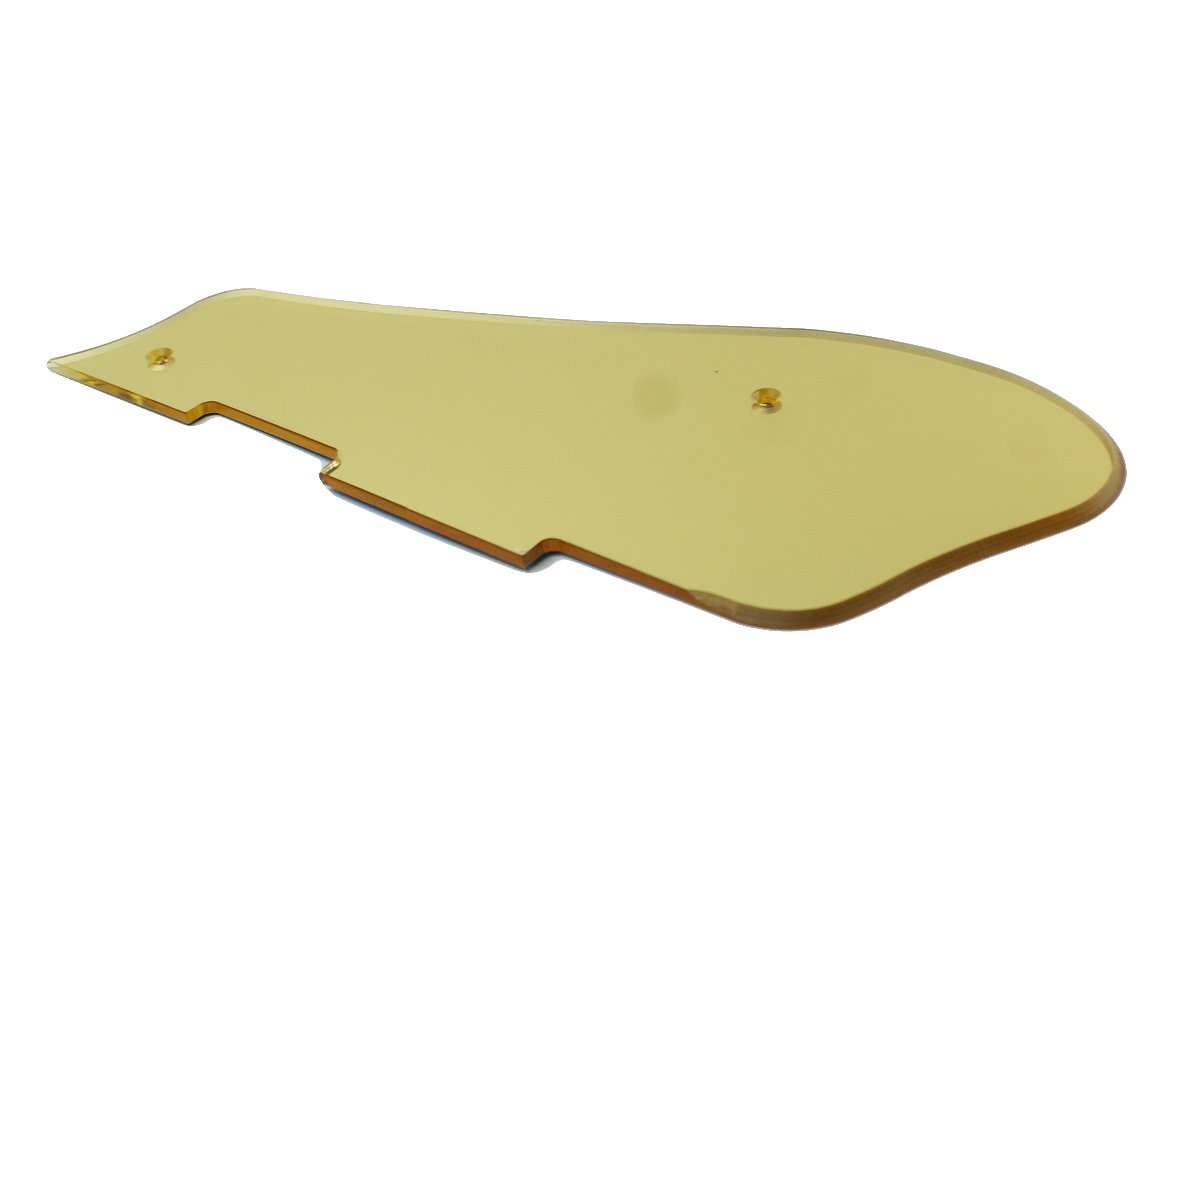 Gorgeous Gold Mirror Custom Guitar Pickguard For Gretsch Style G5120 G5420T